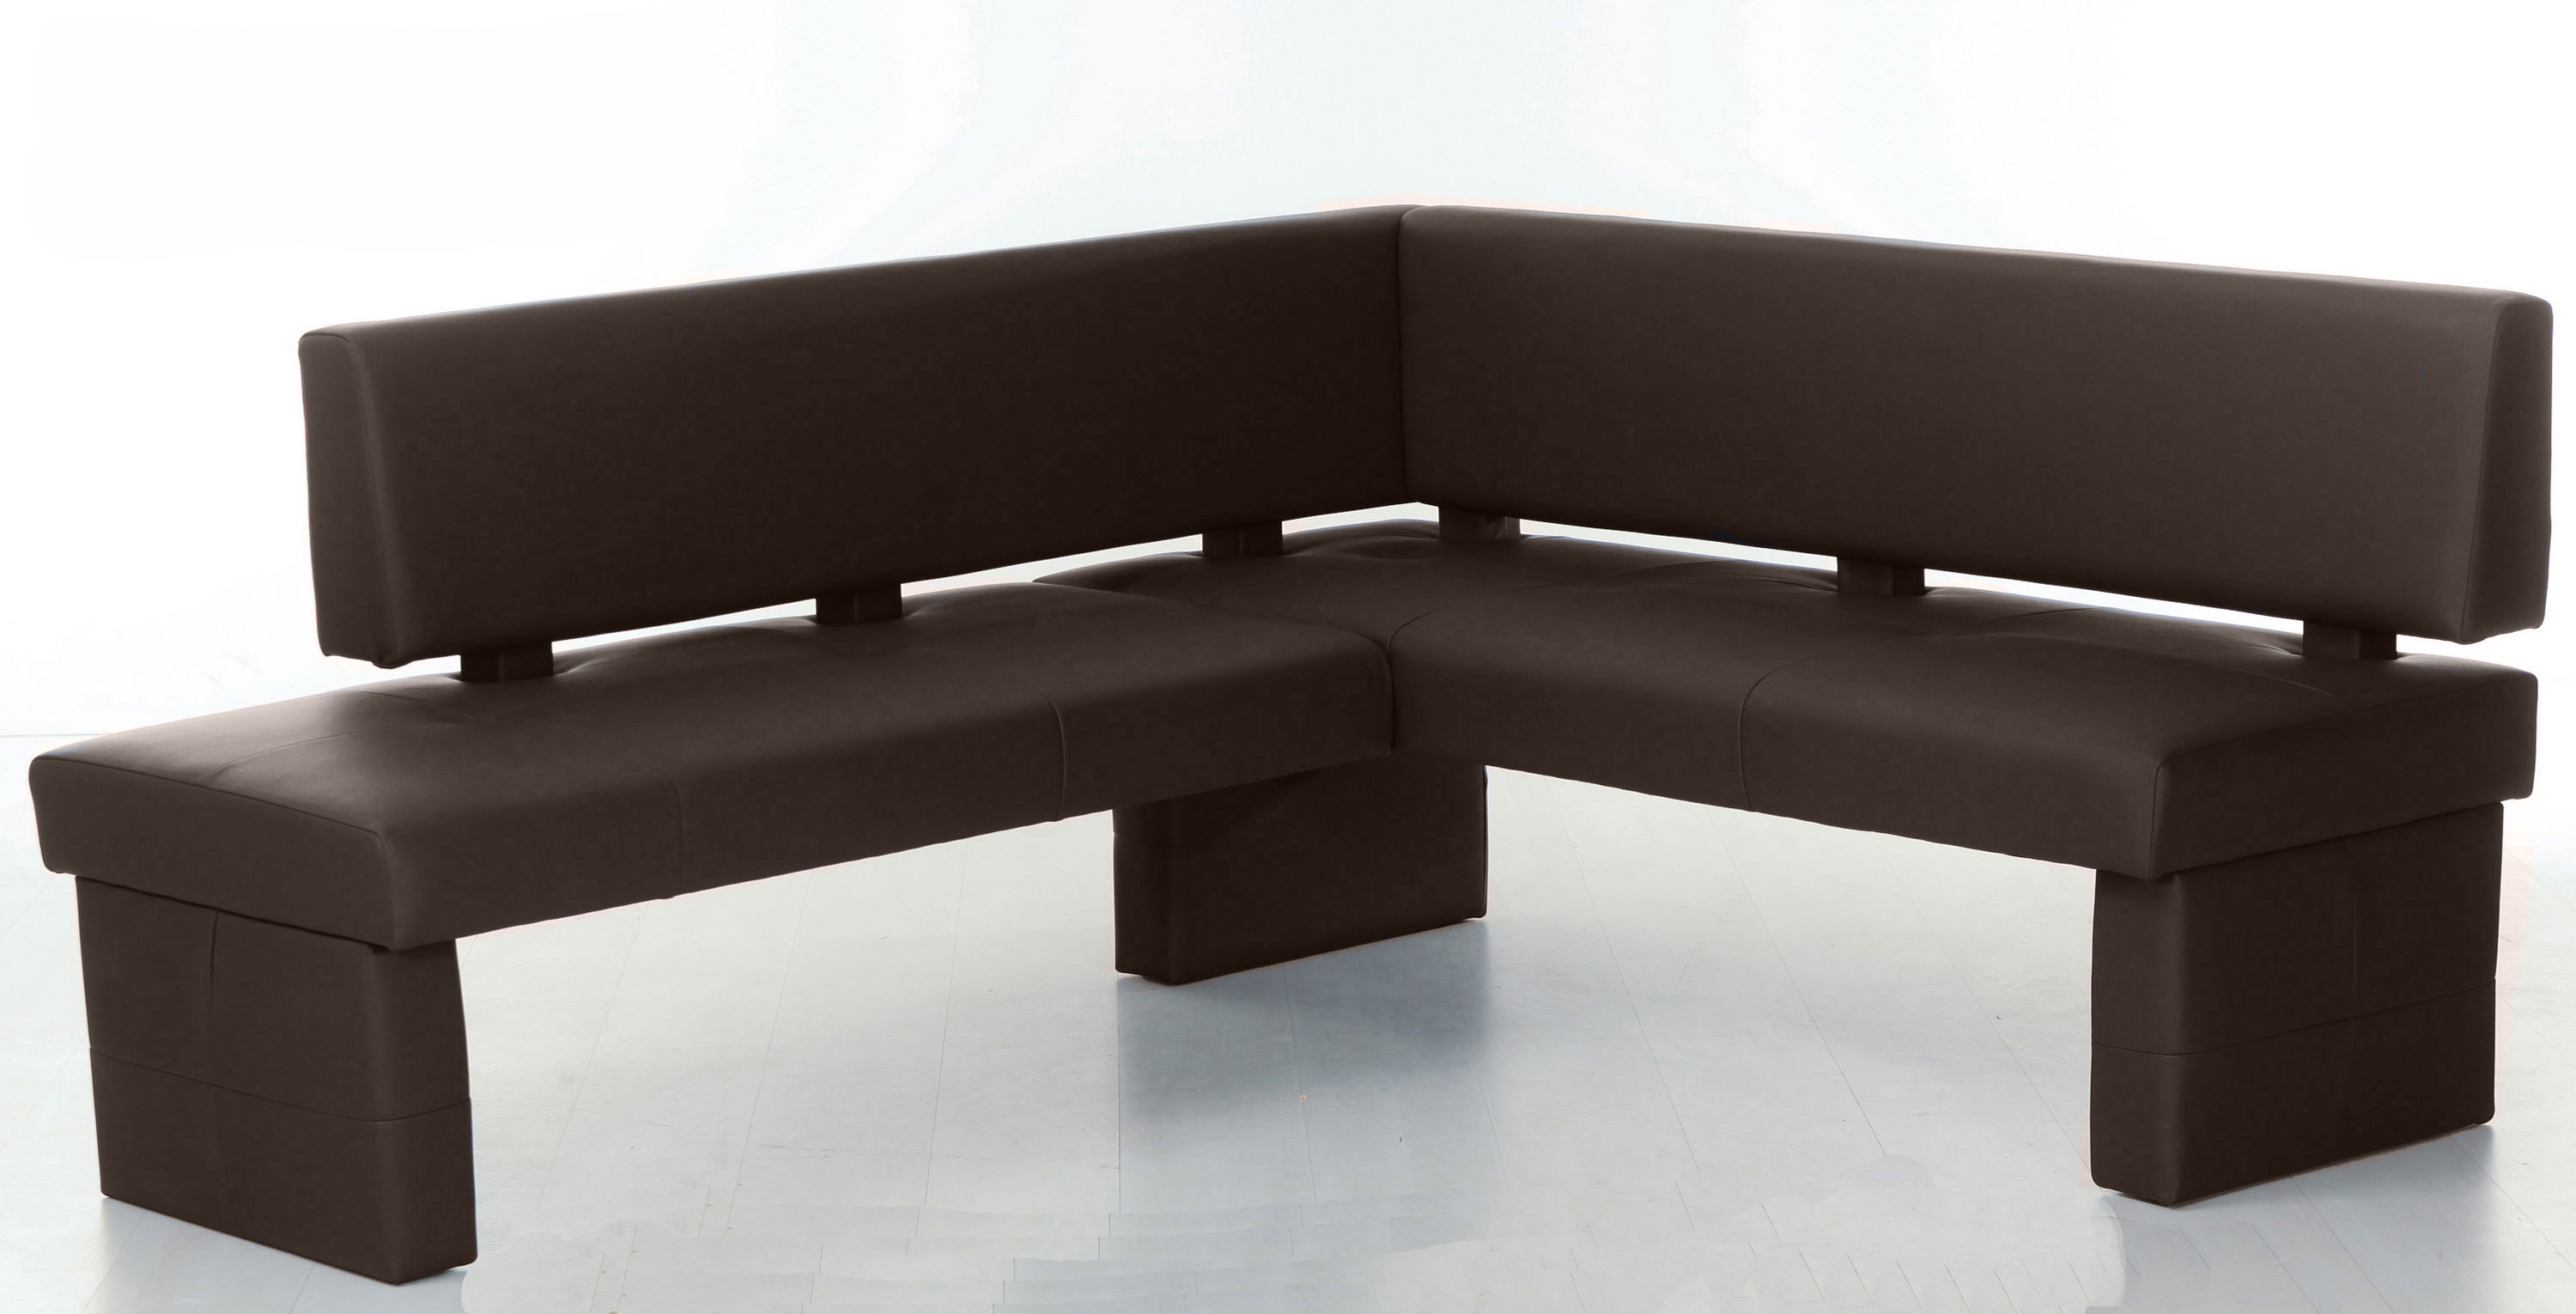 Standard Furniture Domino Eckbank Kunstleder